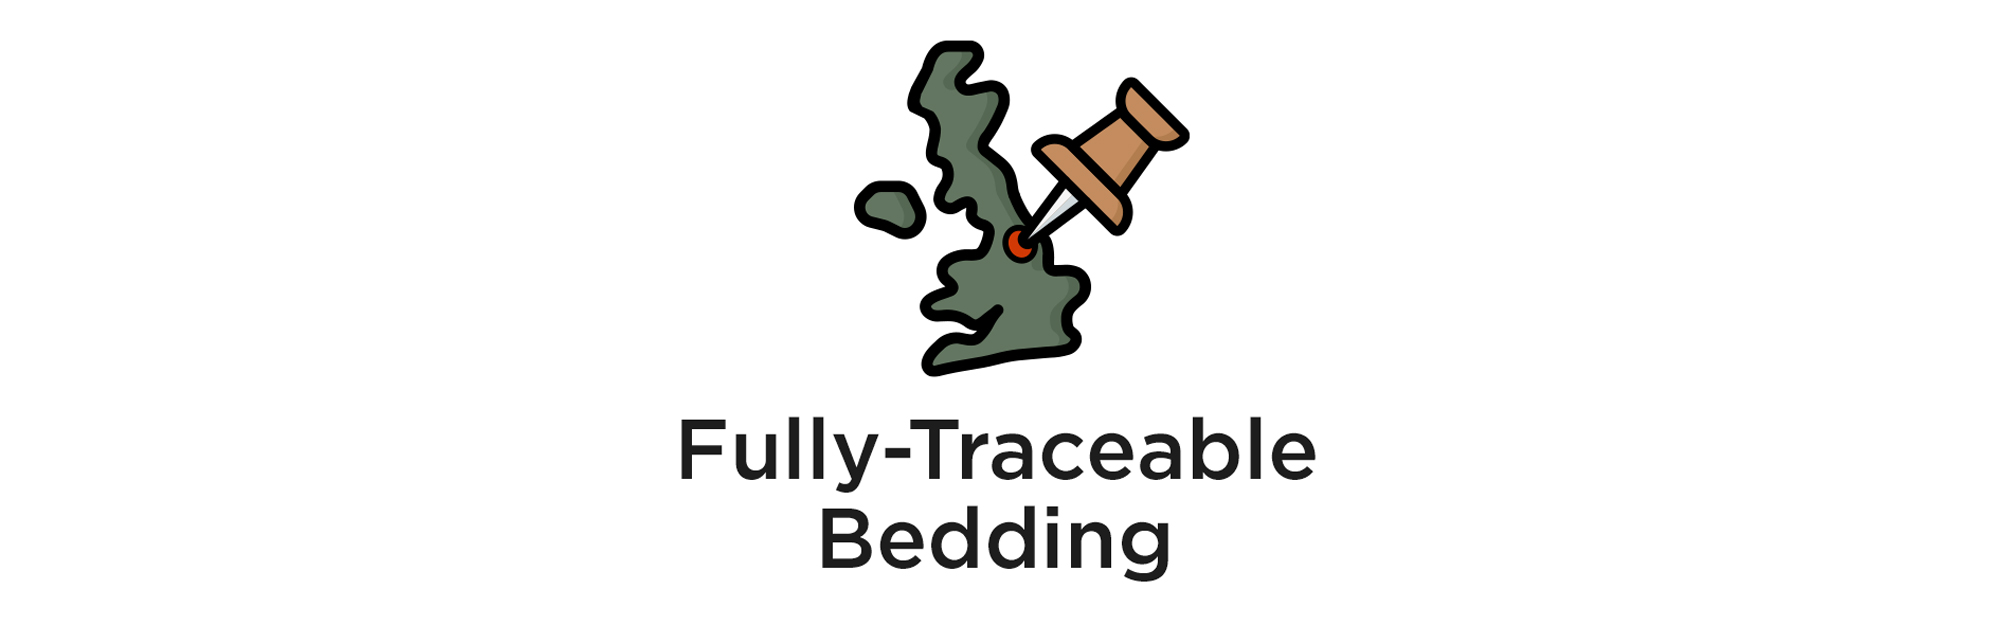 traceable